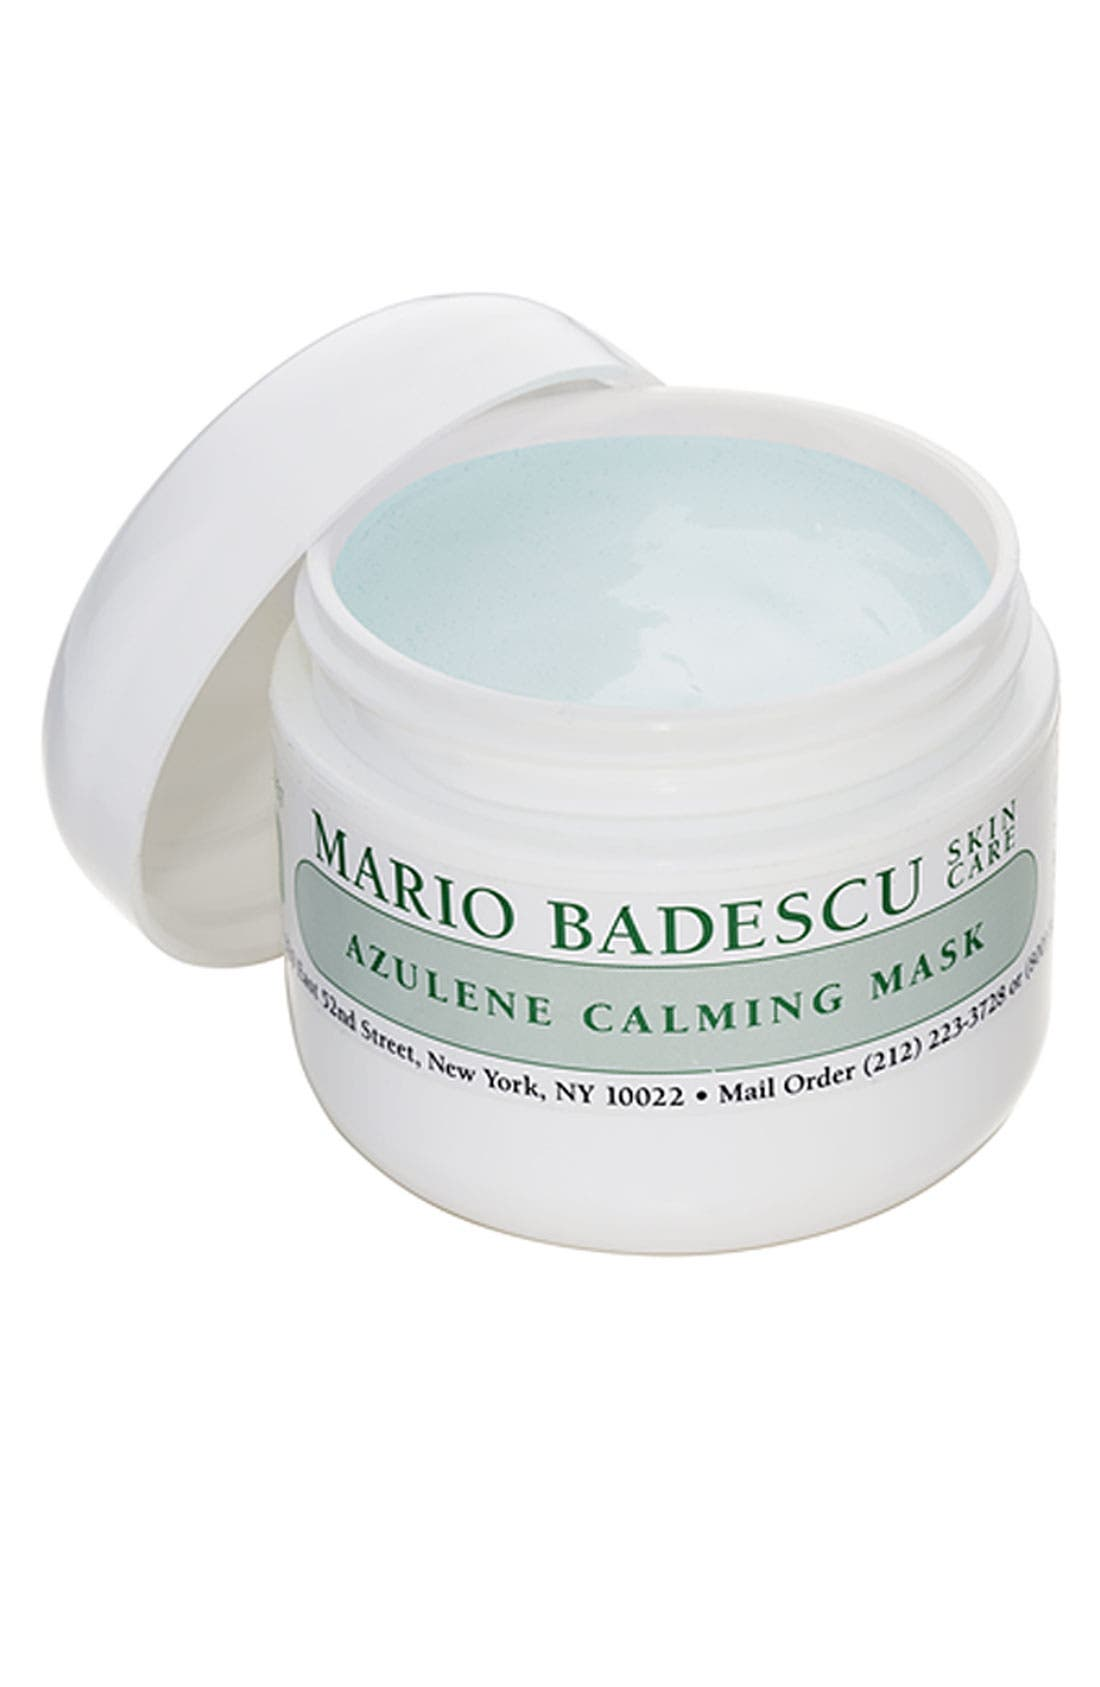 MARIO BADESCU, Azulene Calming Mask, Main thumbnail 1, color, NO COLOR